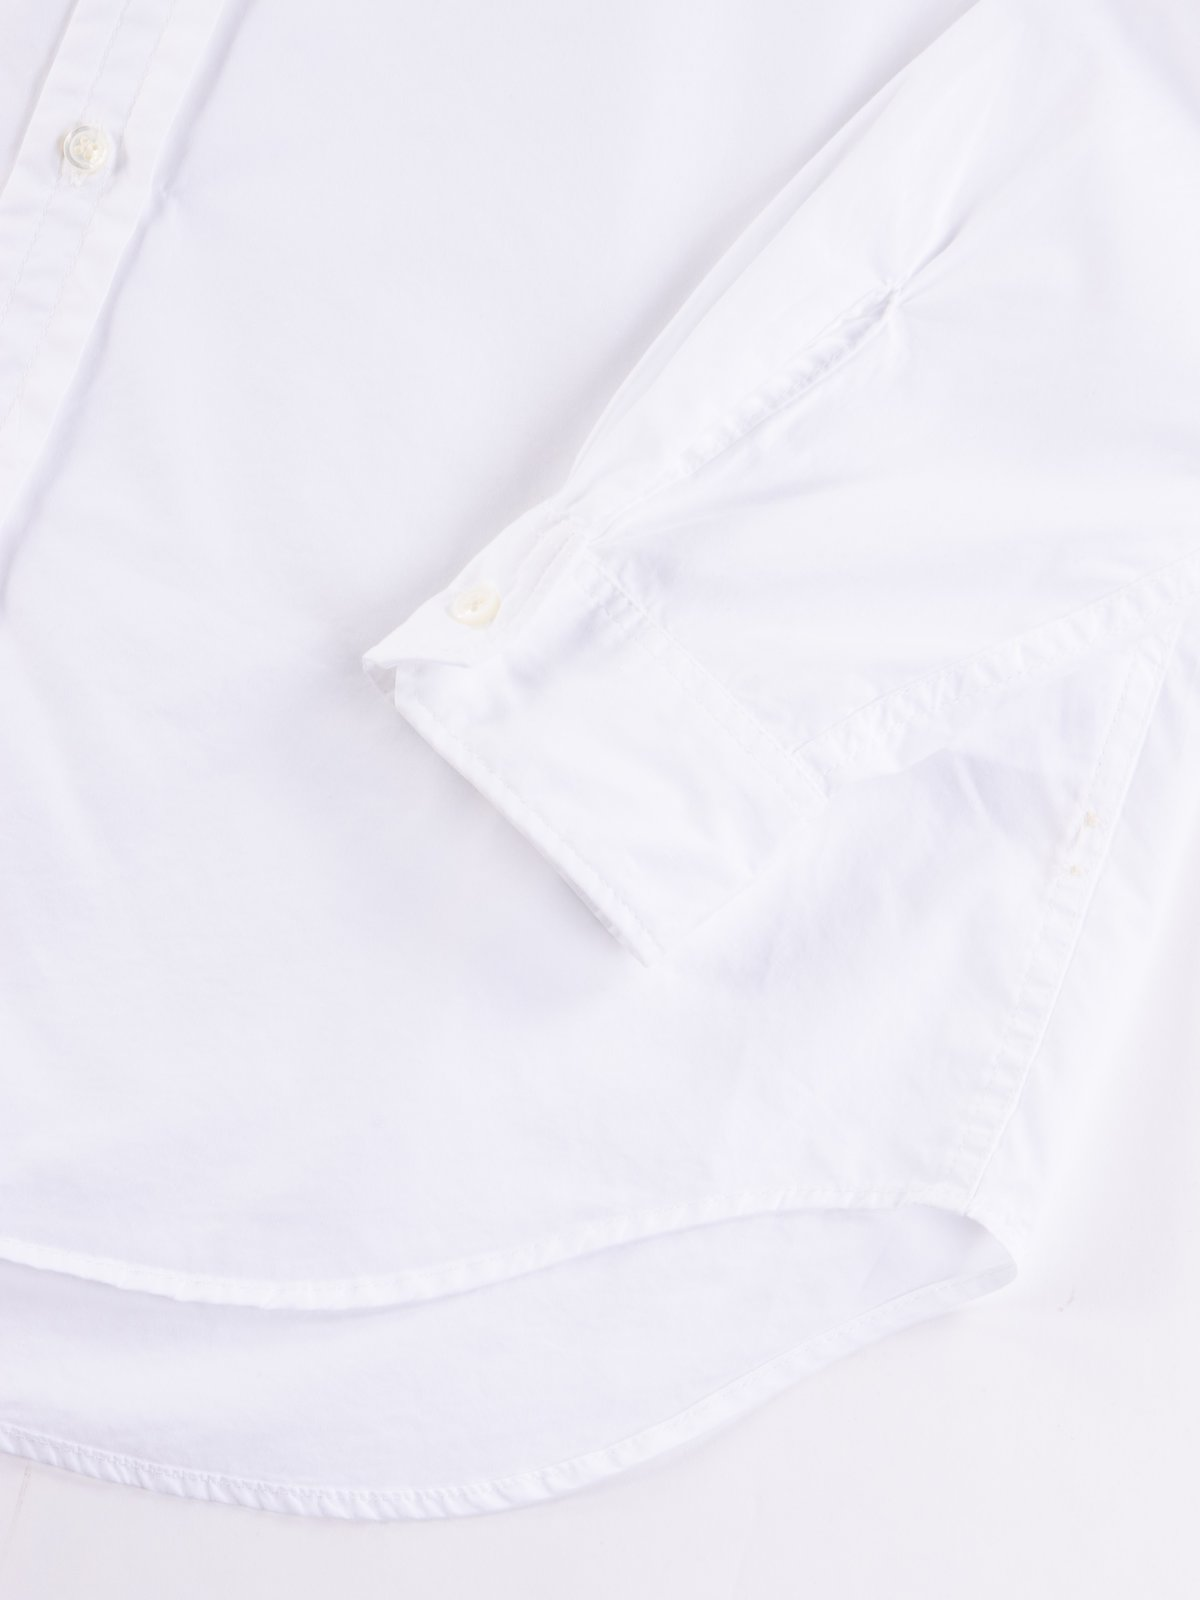 White 100's 2Ply Broadcloth Tab Collar Shirt - Image 4